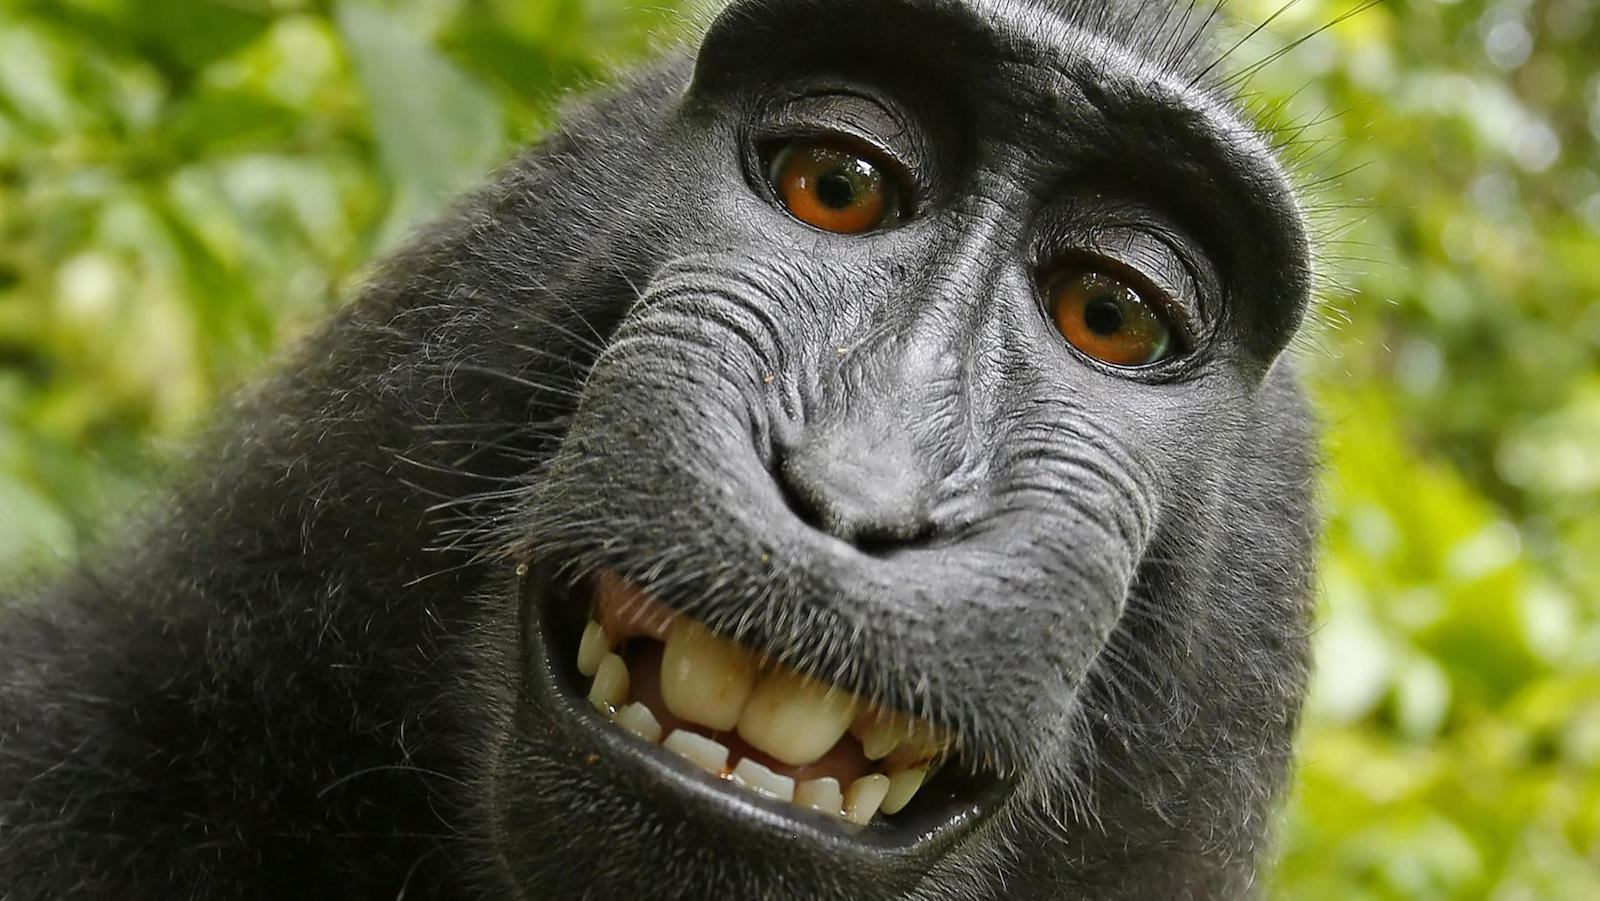 If a monkey takes a selfie in the forest, and no one is around to see it, does he make money?